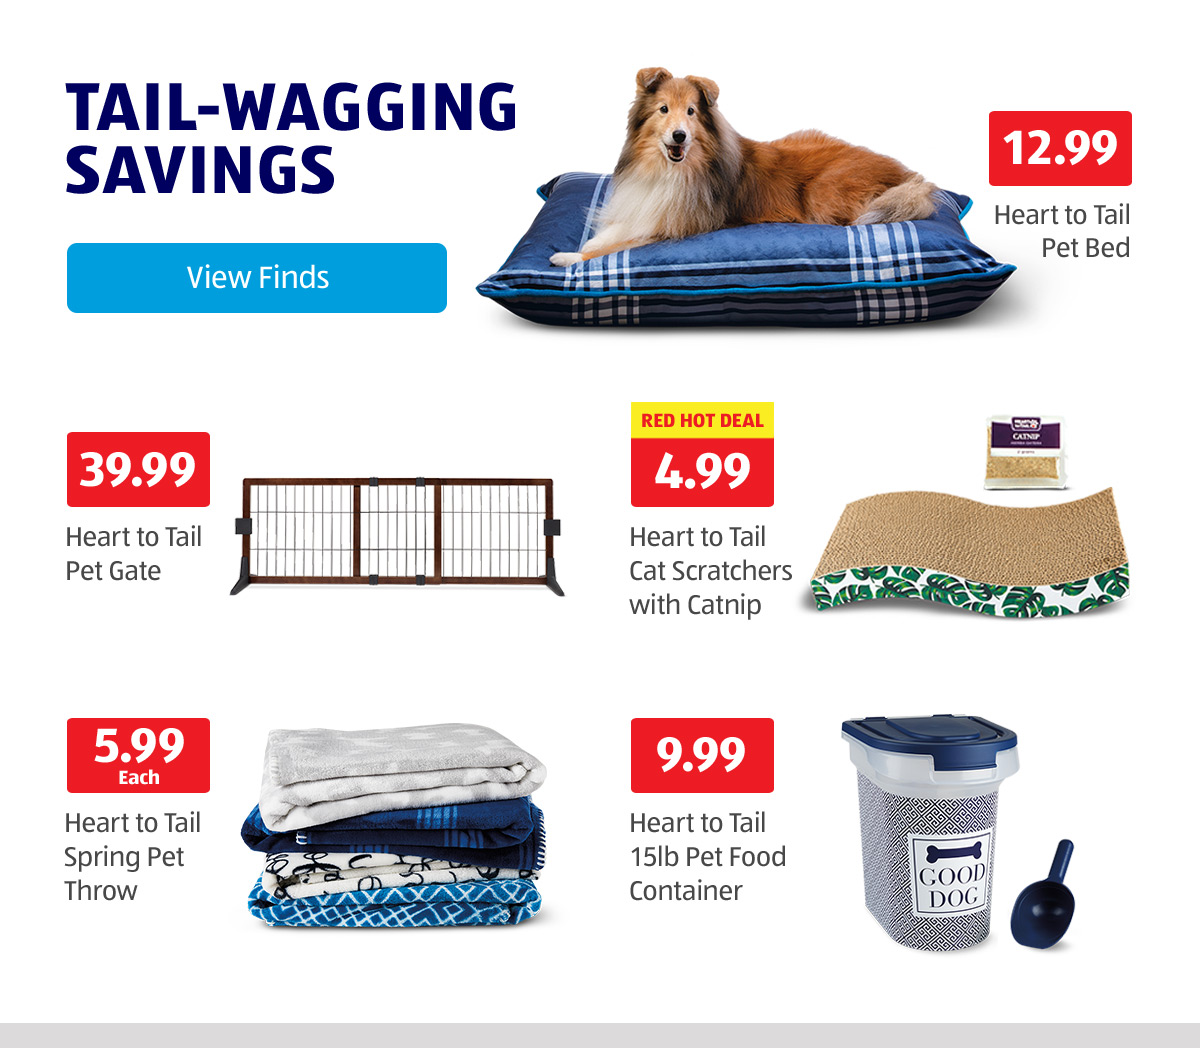 Aldi Ready For Mouth Watering And Tail Wagging Savings At Aldi